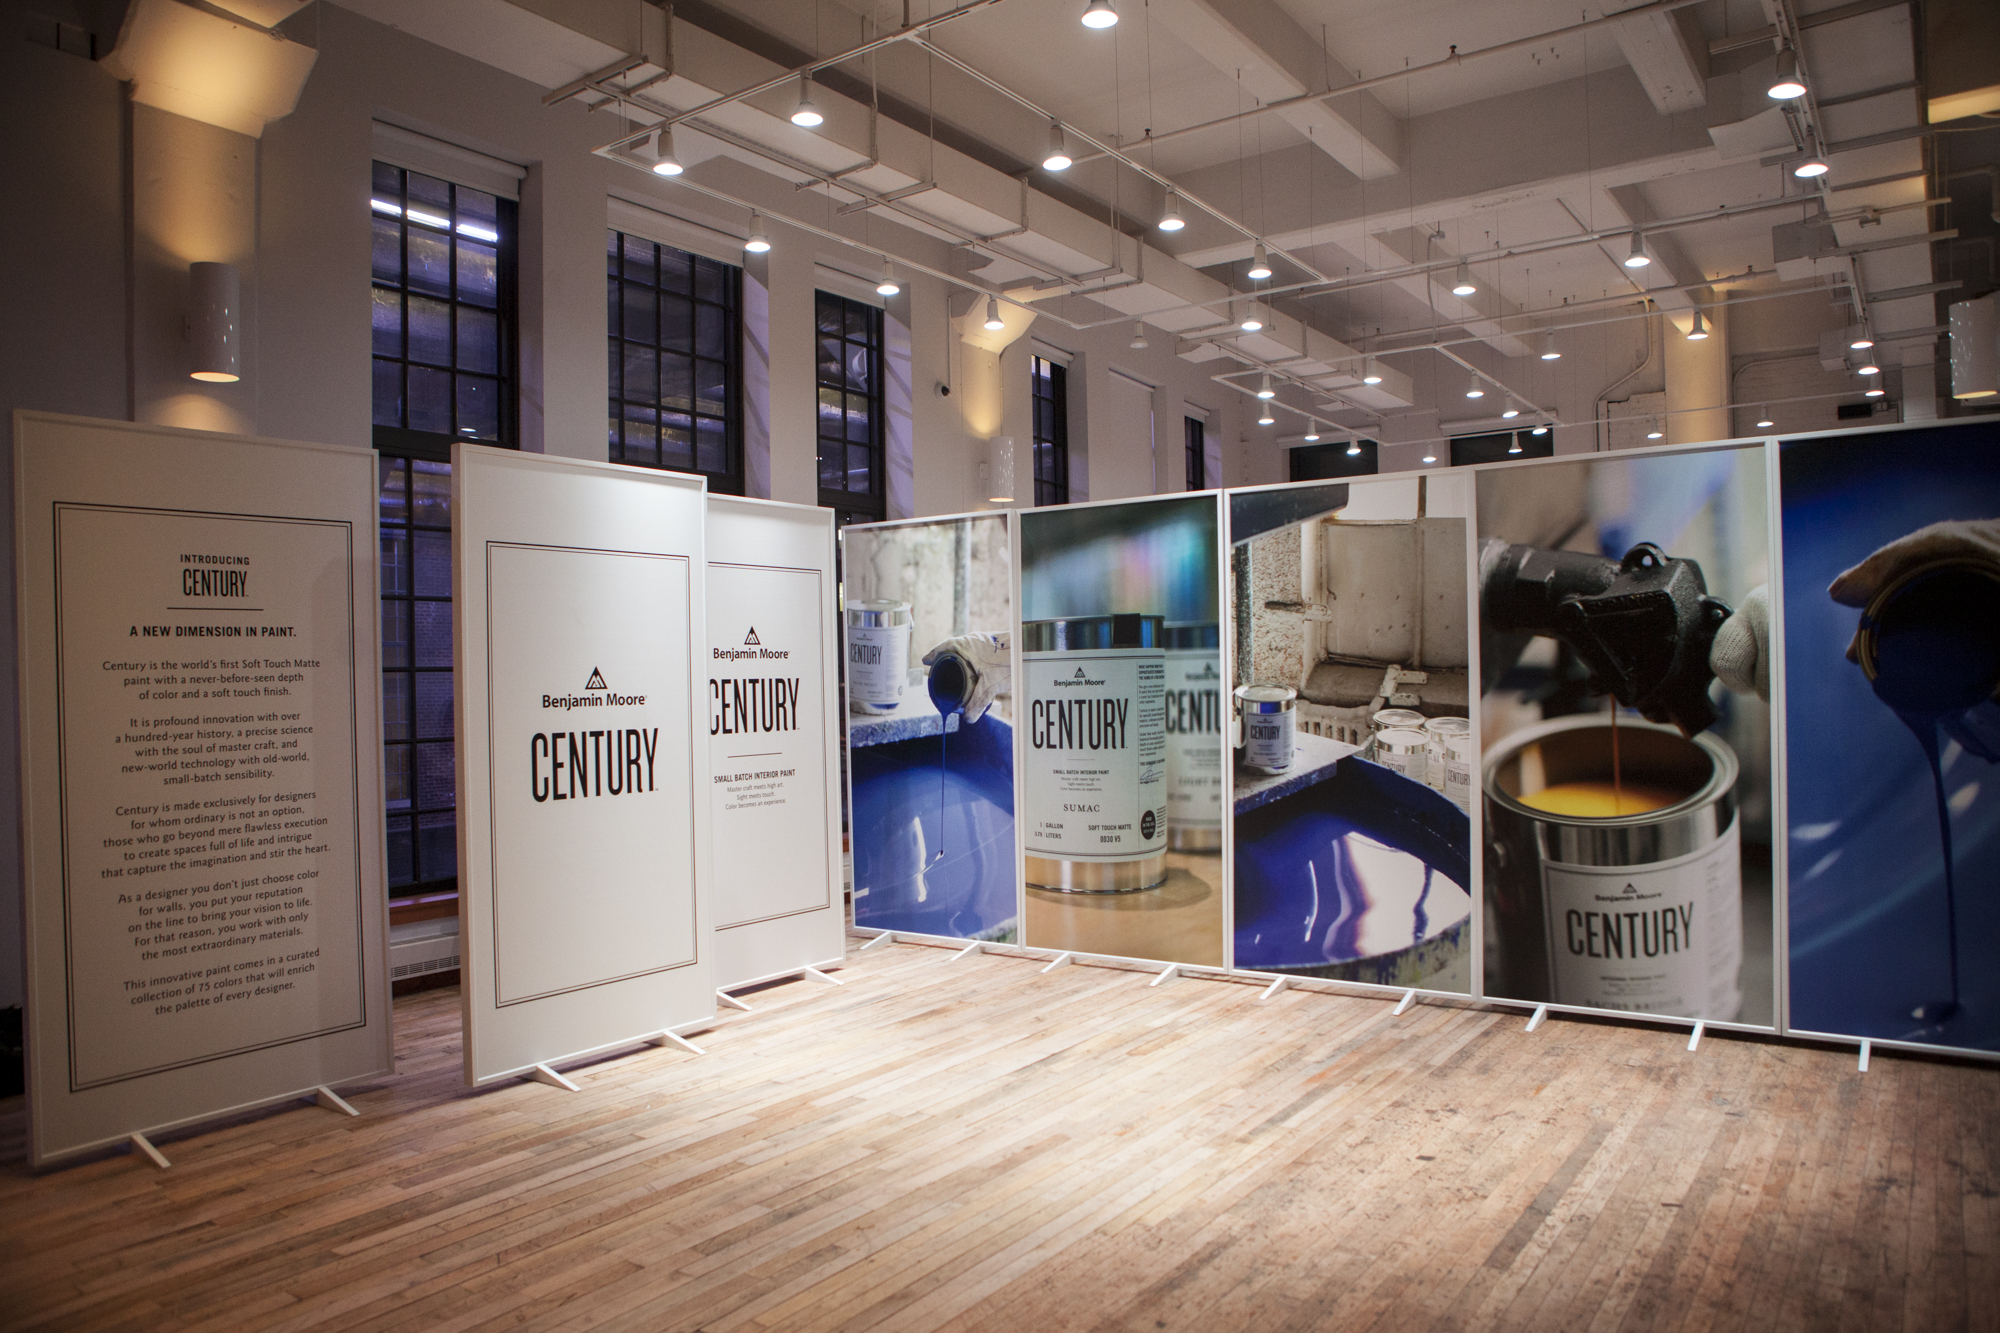 Large-scale panels greeted guests and illustrated the behind-the-scenes process for creating CENTURY.